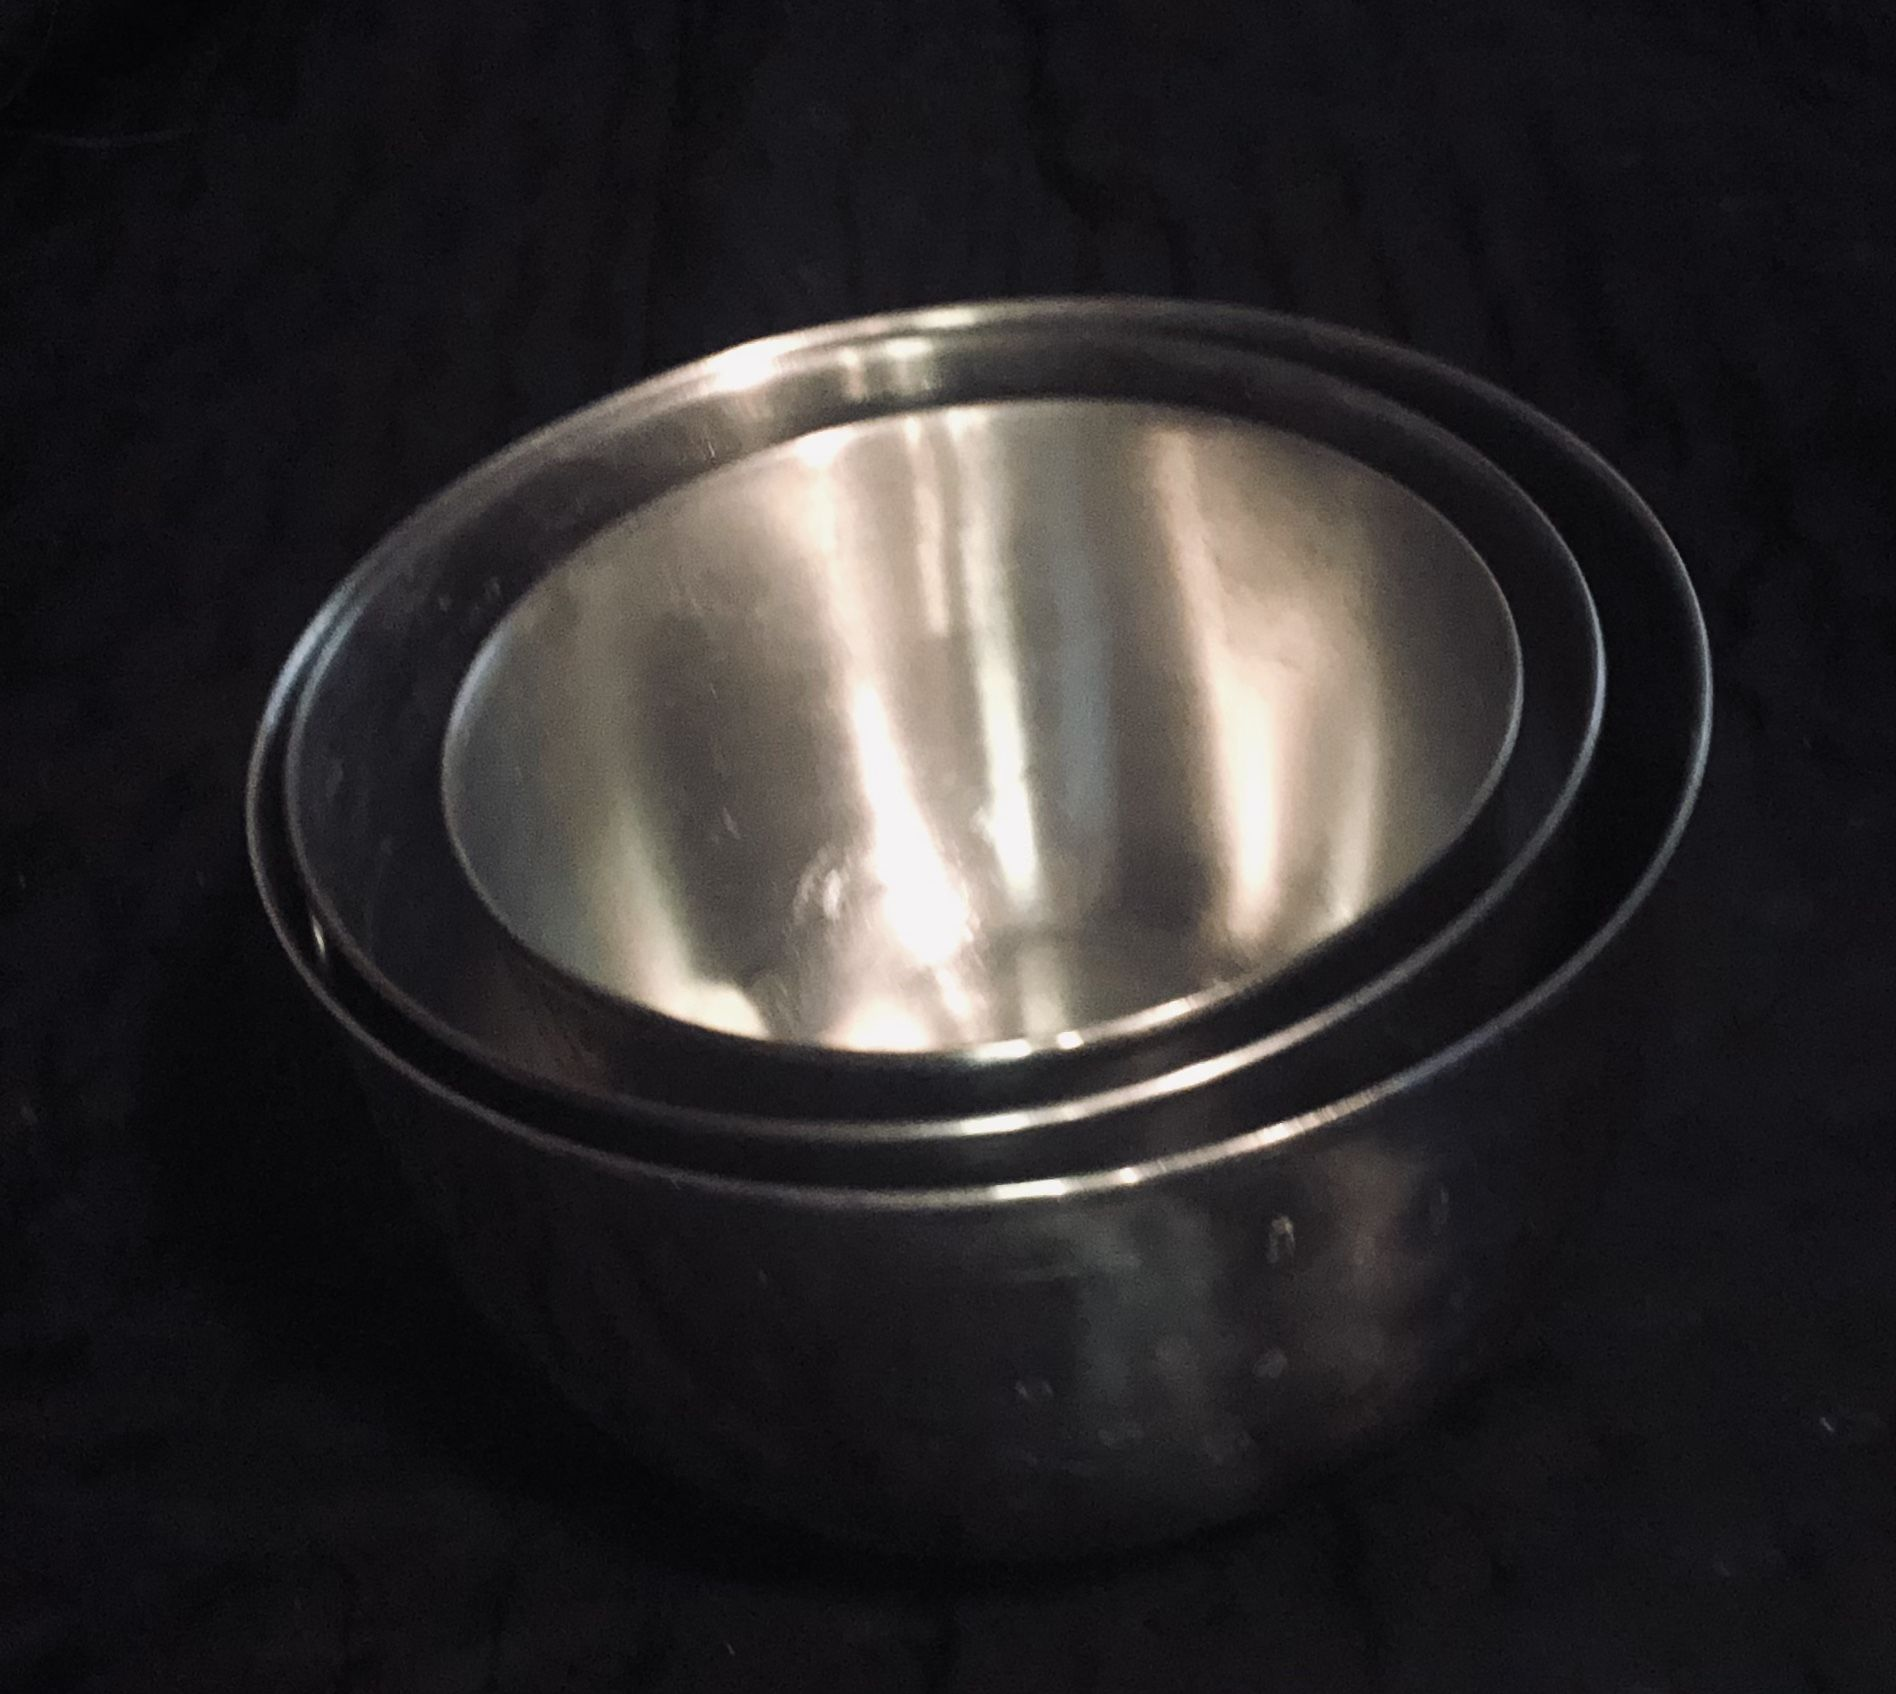 Set Of 3 Great Condition Stainless Steal Nesting Mixing Bowls.  1 Is  Farberware Double Thumb Ring #734. $20 Pickup/$23 Shipping